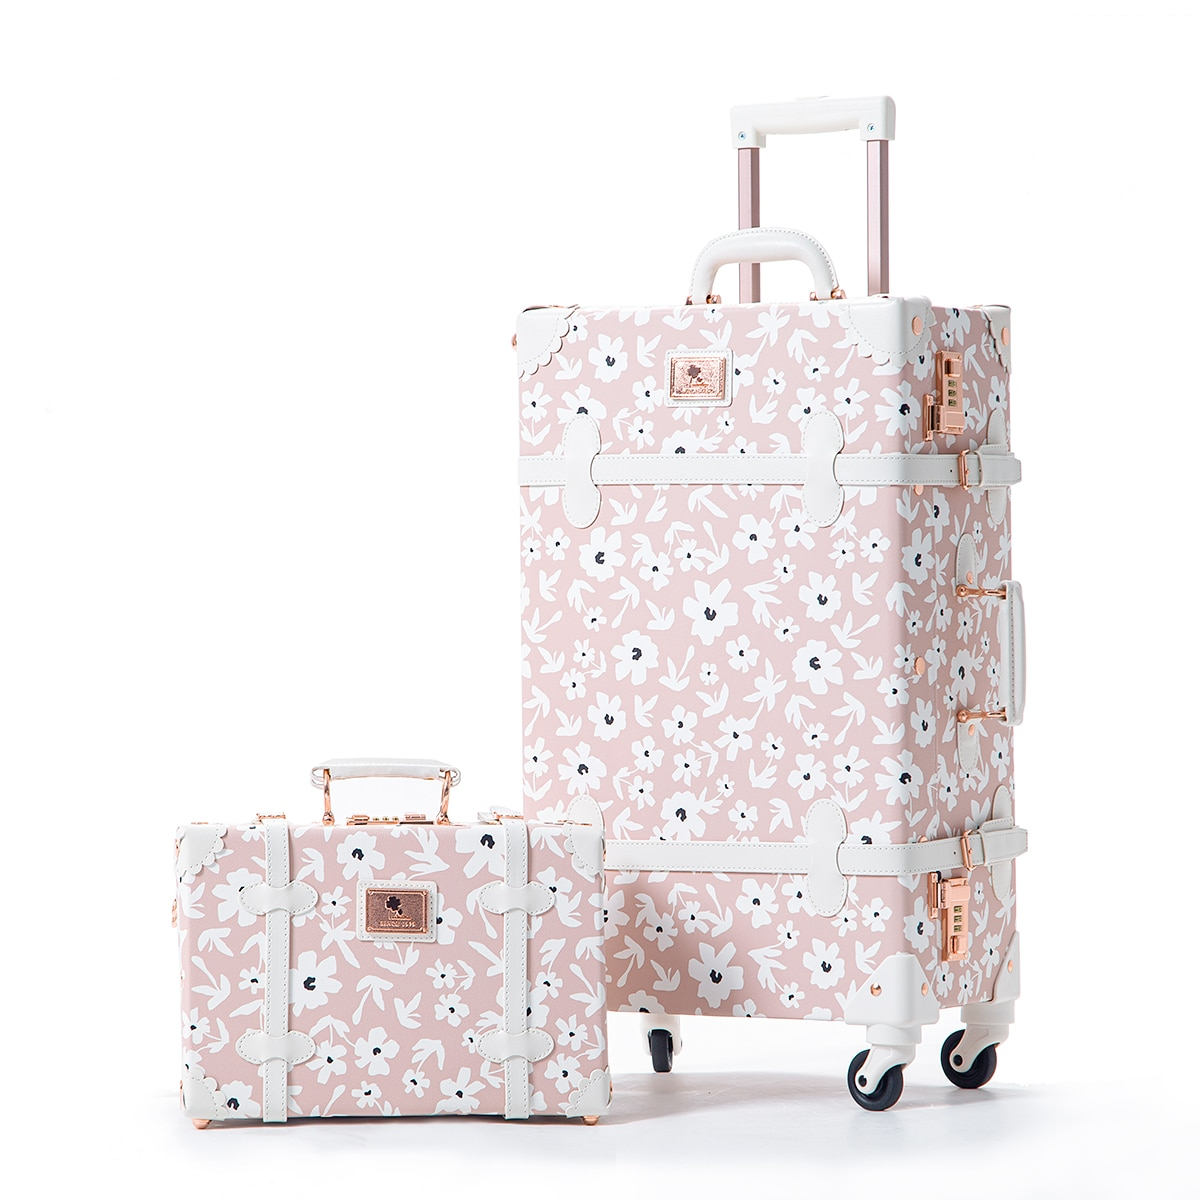 UNIWALKER 2 Piece Vintage Luggage Set 20-26inch Carry on Women Suitcase with 12inch Cosmetic Train Case